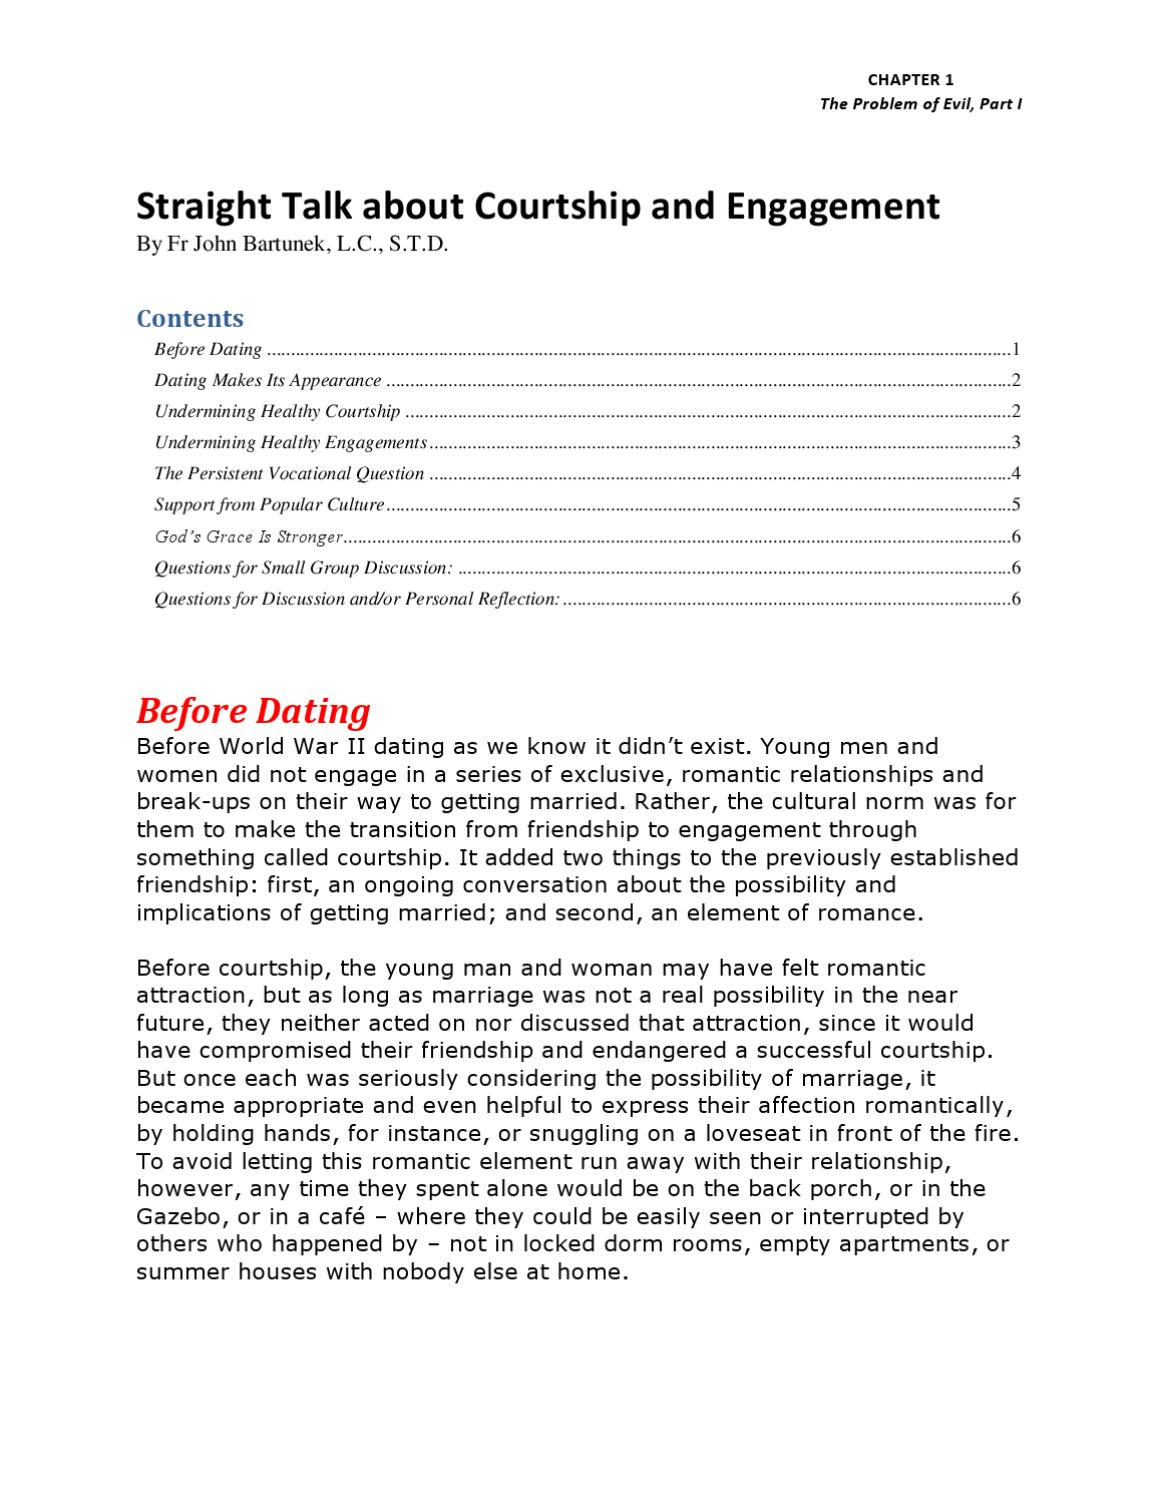 dating small group questions